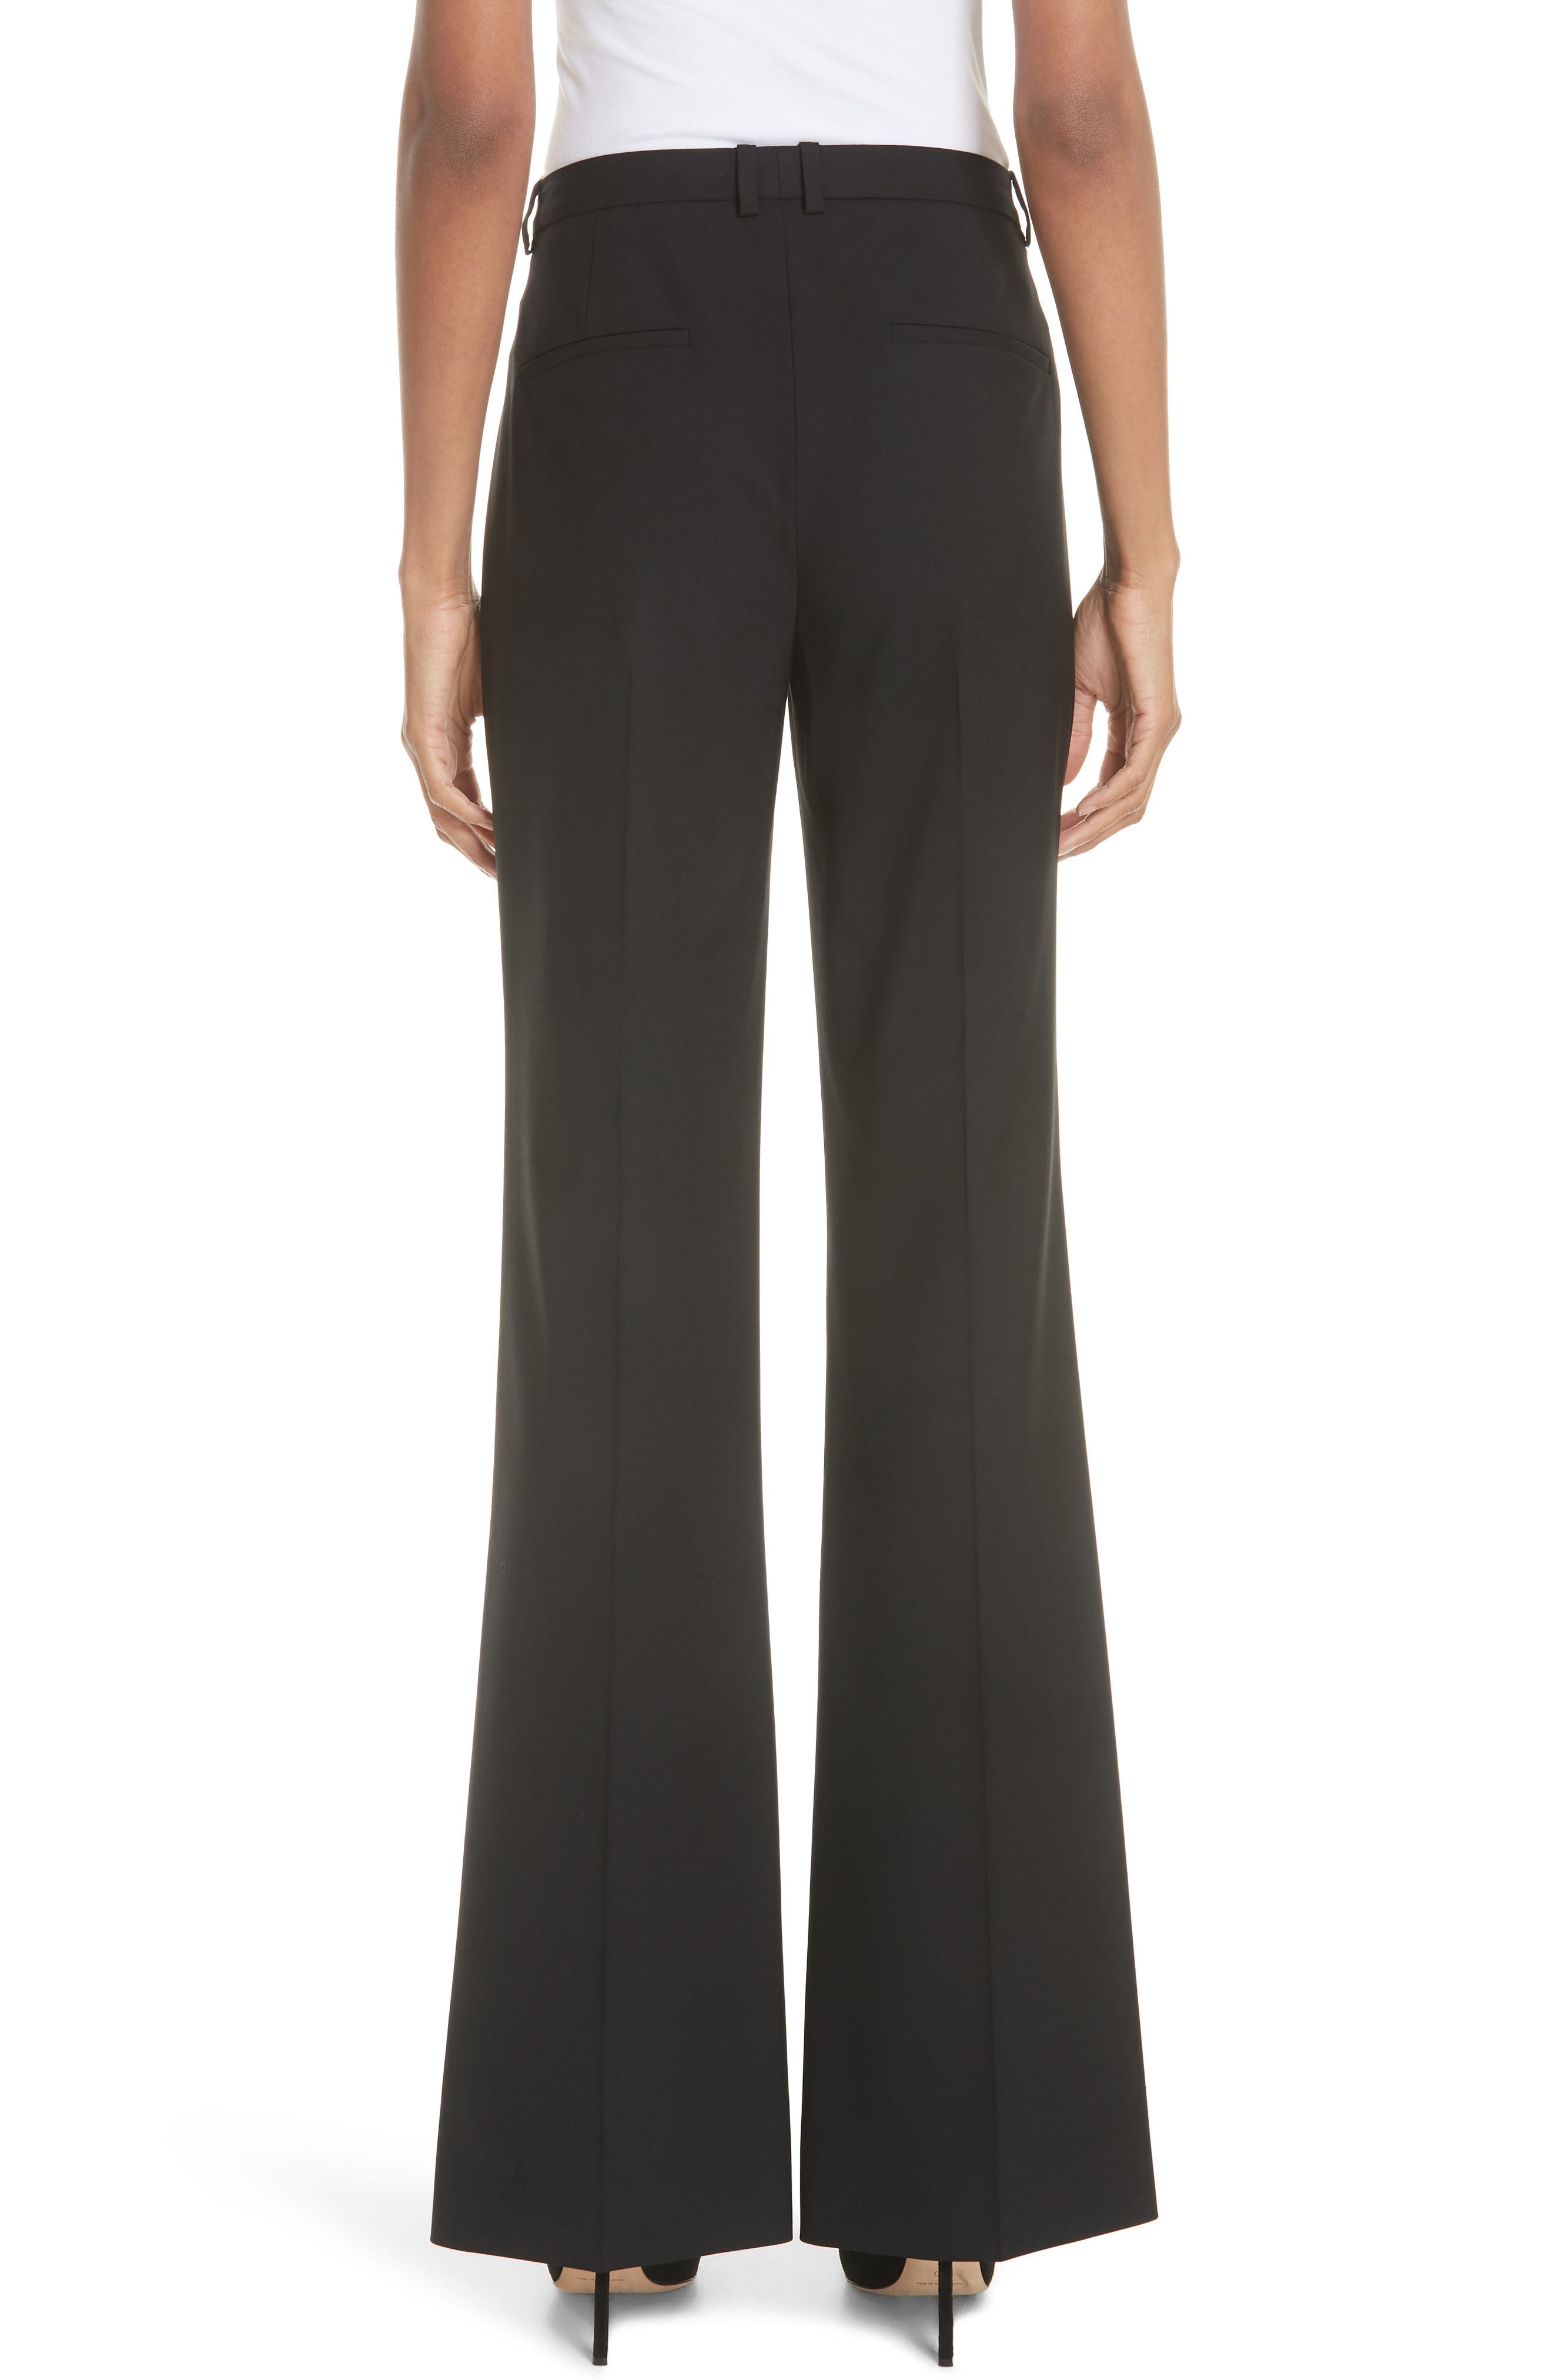 THEORY, Demitria 2 Stretch Wool Suit Pants, Alternate thumbnail 2, color, BLACK